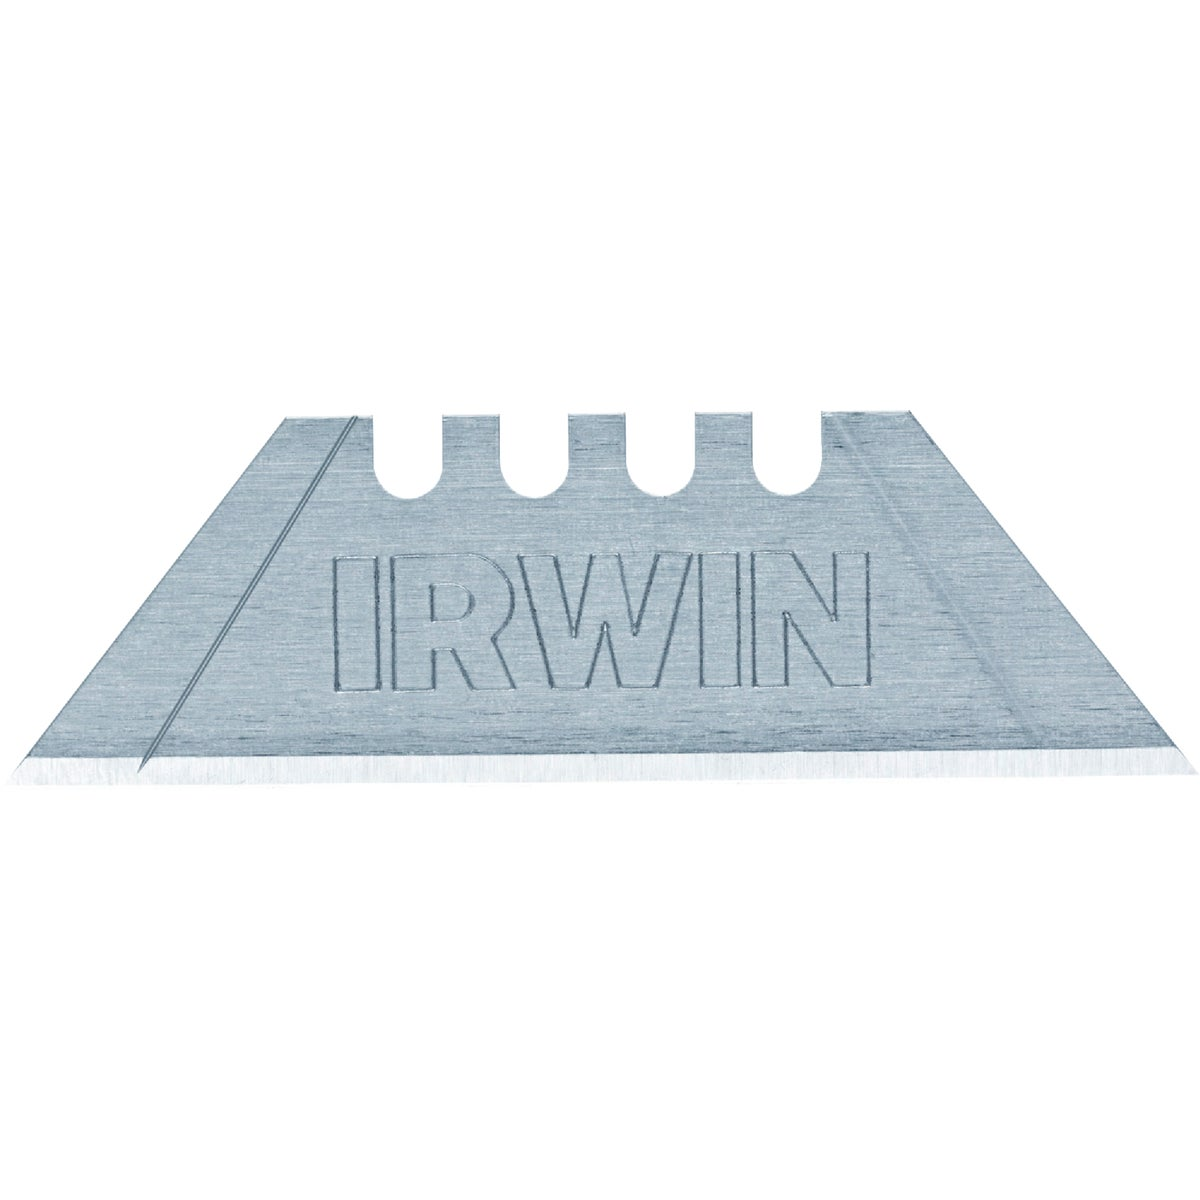 5PK 4-PT CARBON BLADE - 1764983 by Irwin Industr Tool